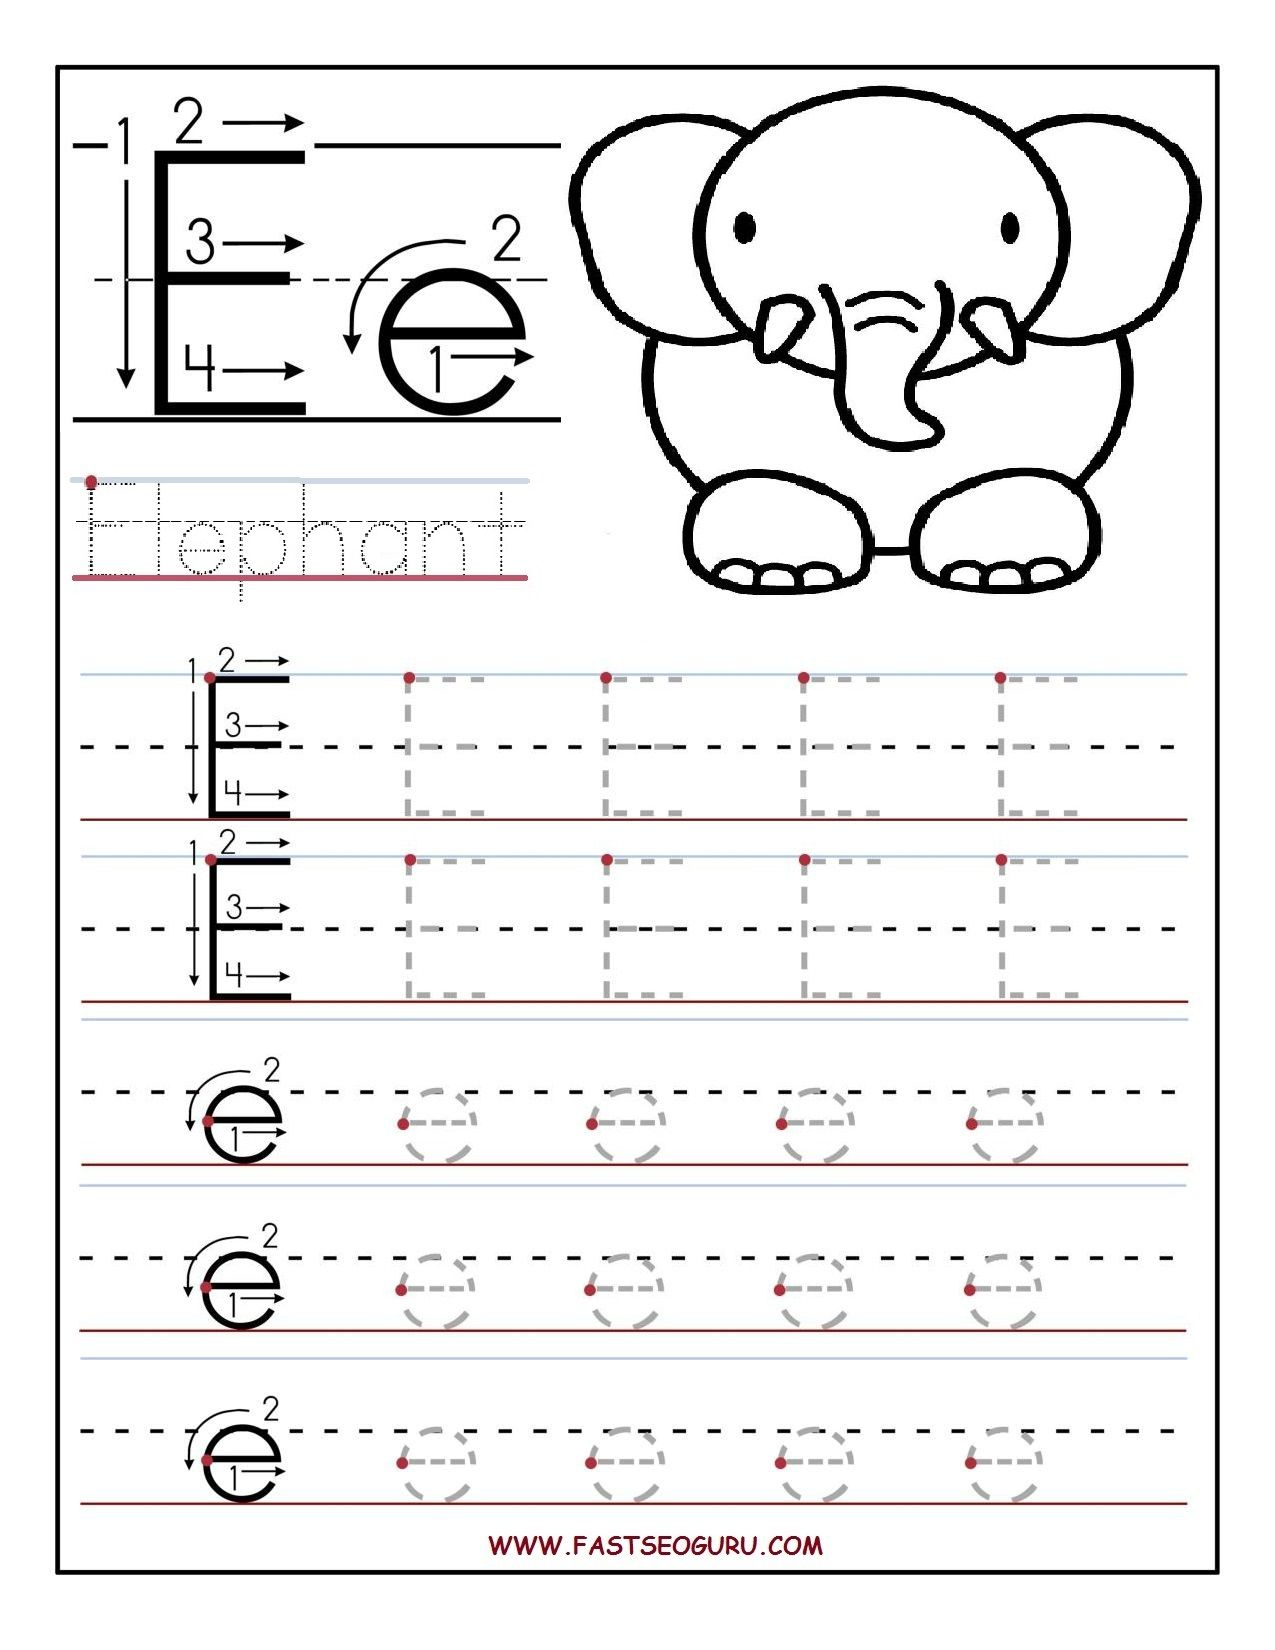 Printable Letter E Tracing Worksheets For Preschool intended for Letter E Tracing Worksheets